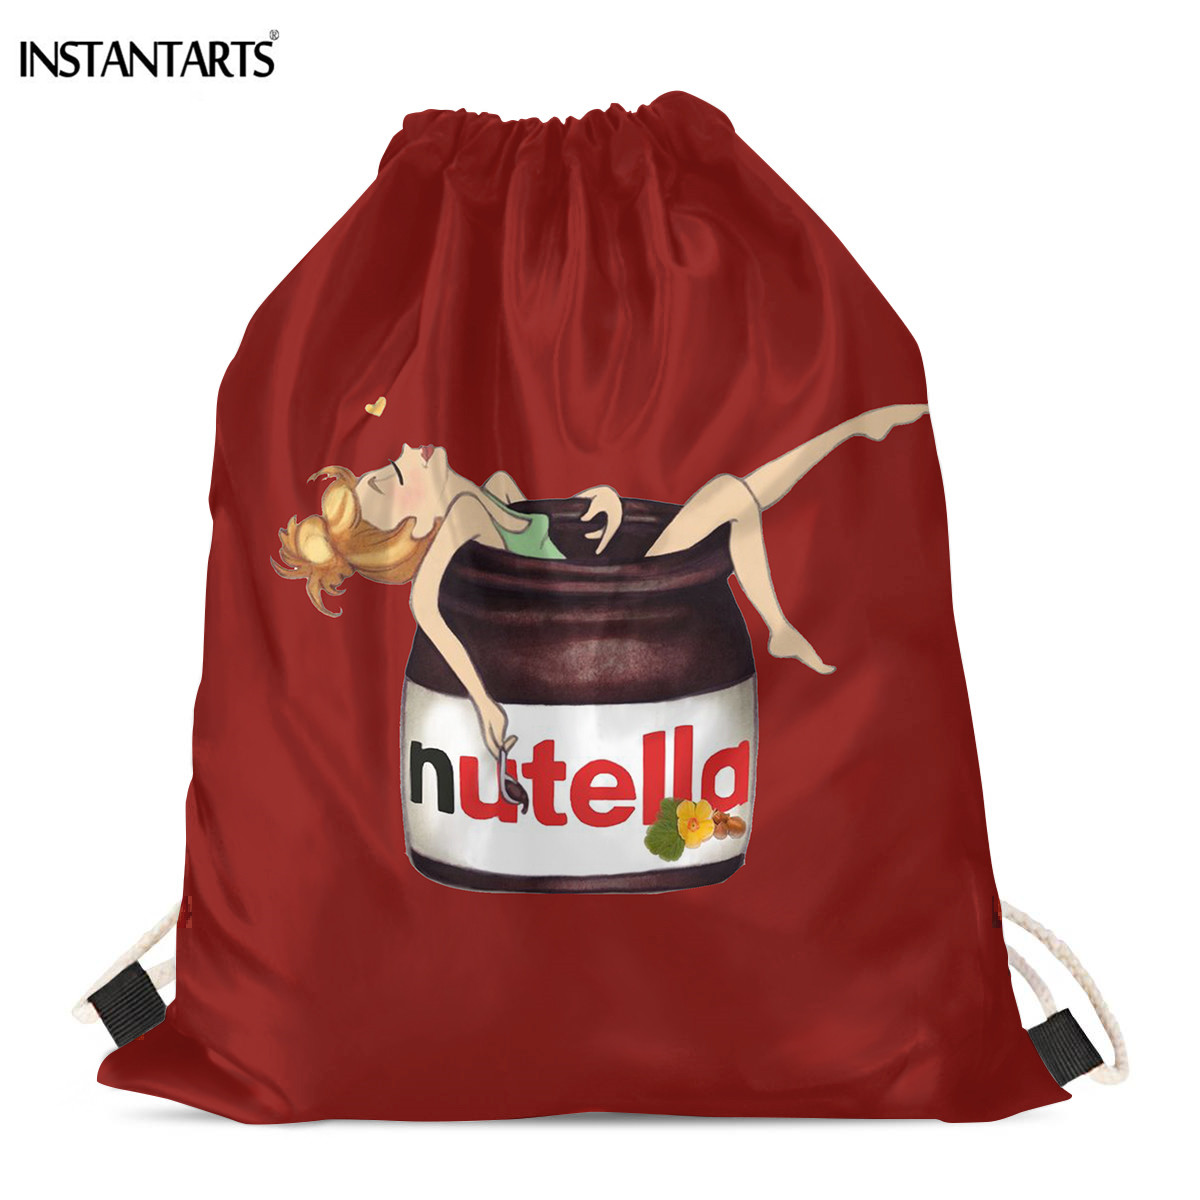 INSTANTARTS Cute Foods Nutella Lady Print Shopping Bags For Women Casual Drawstrings Bag Girls Beach Storage Backpack Gymsack